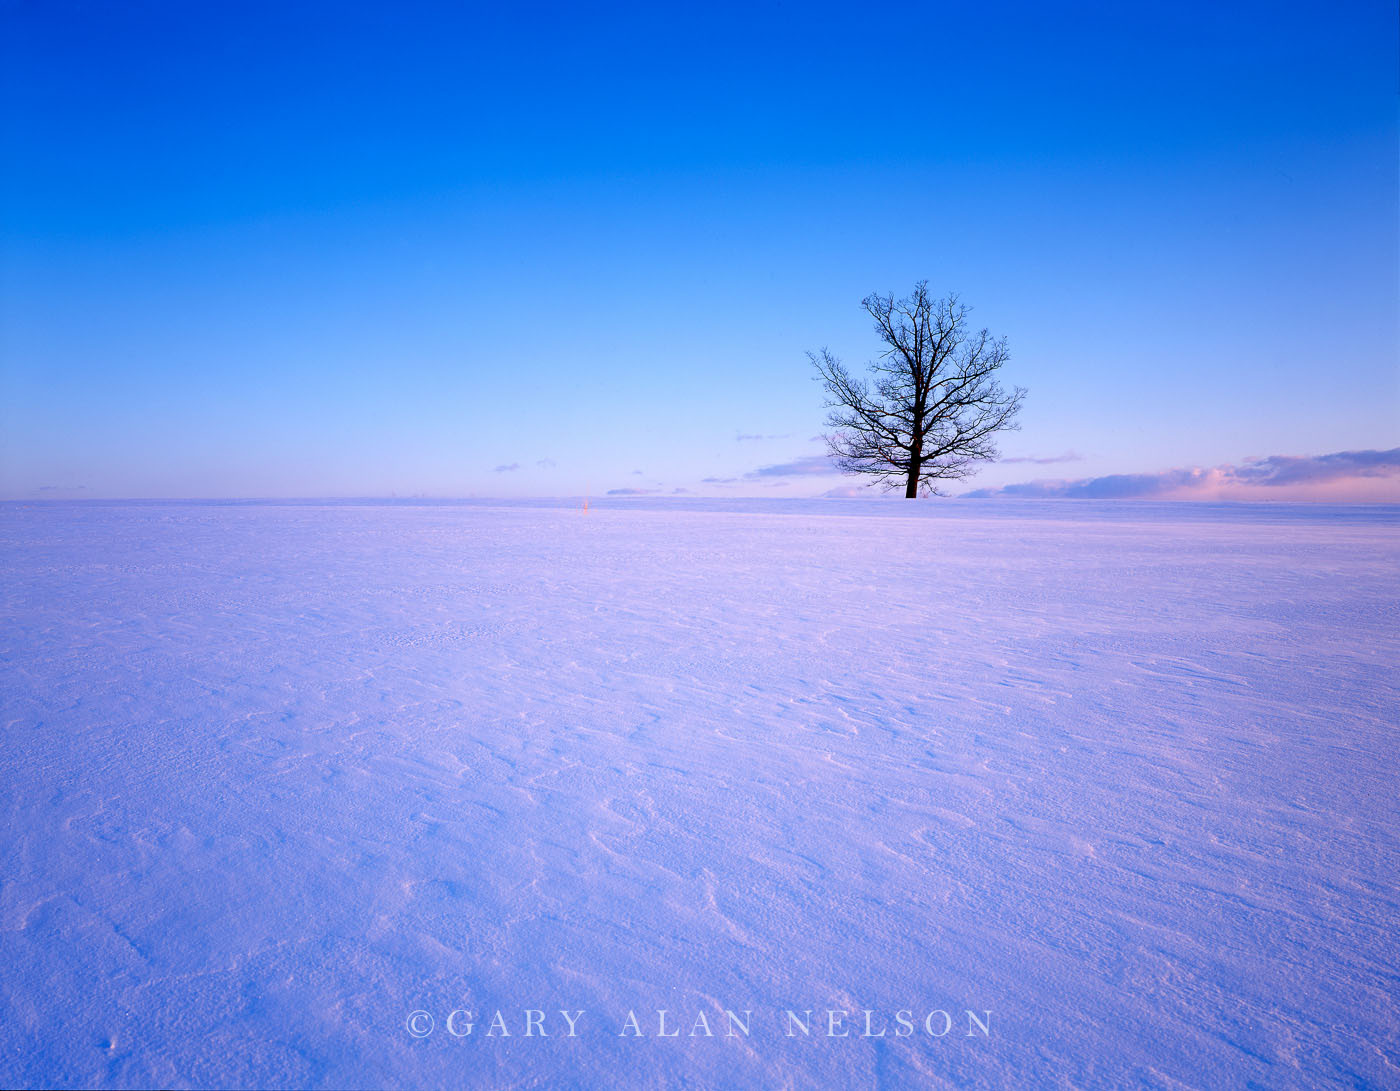 MN-94-10-SC Oak tree in a state of nature, on a frozen and windblown prairie central Minnesota